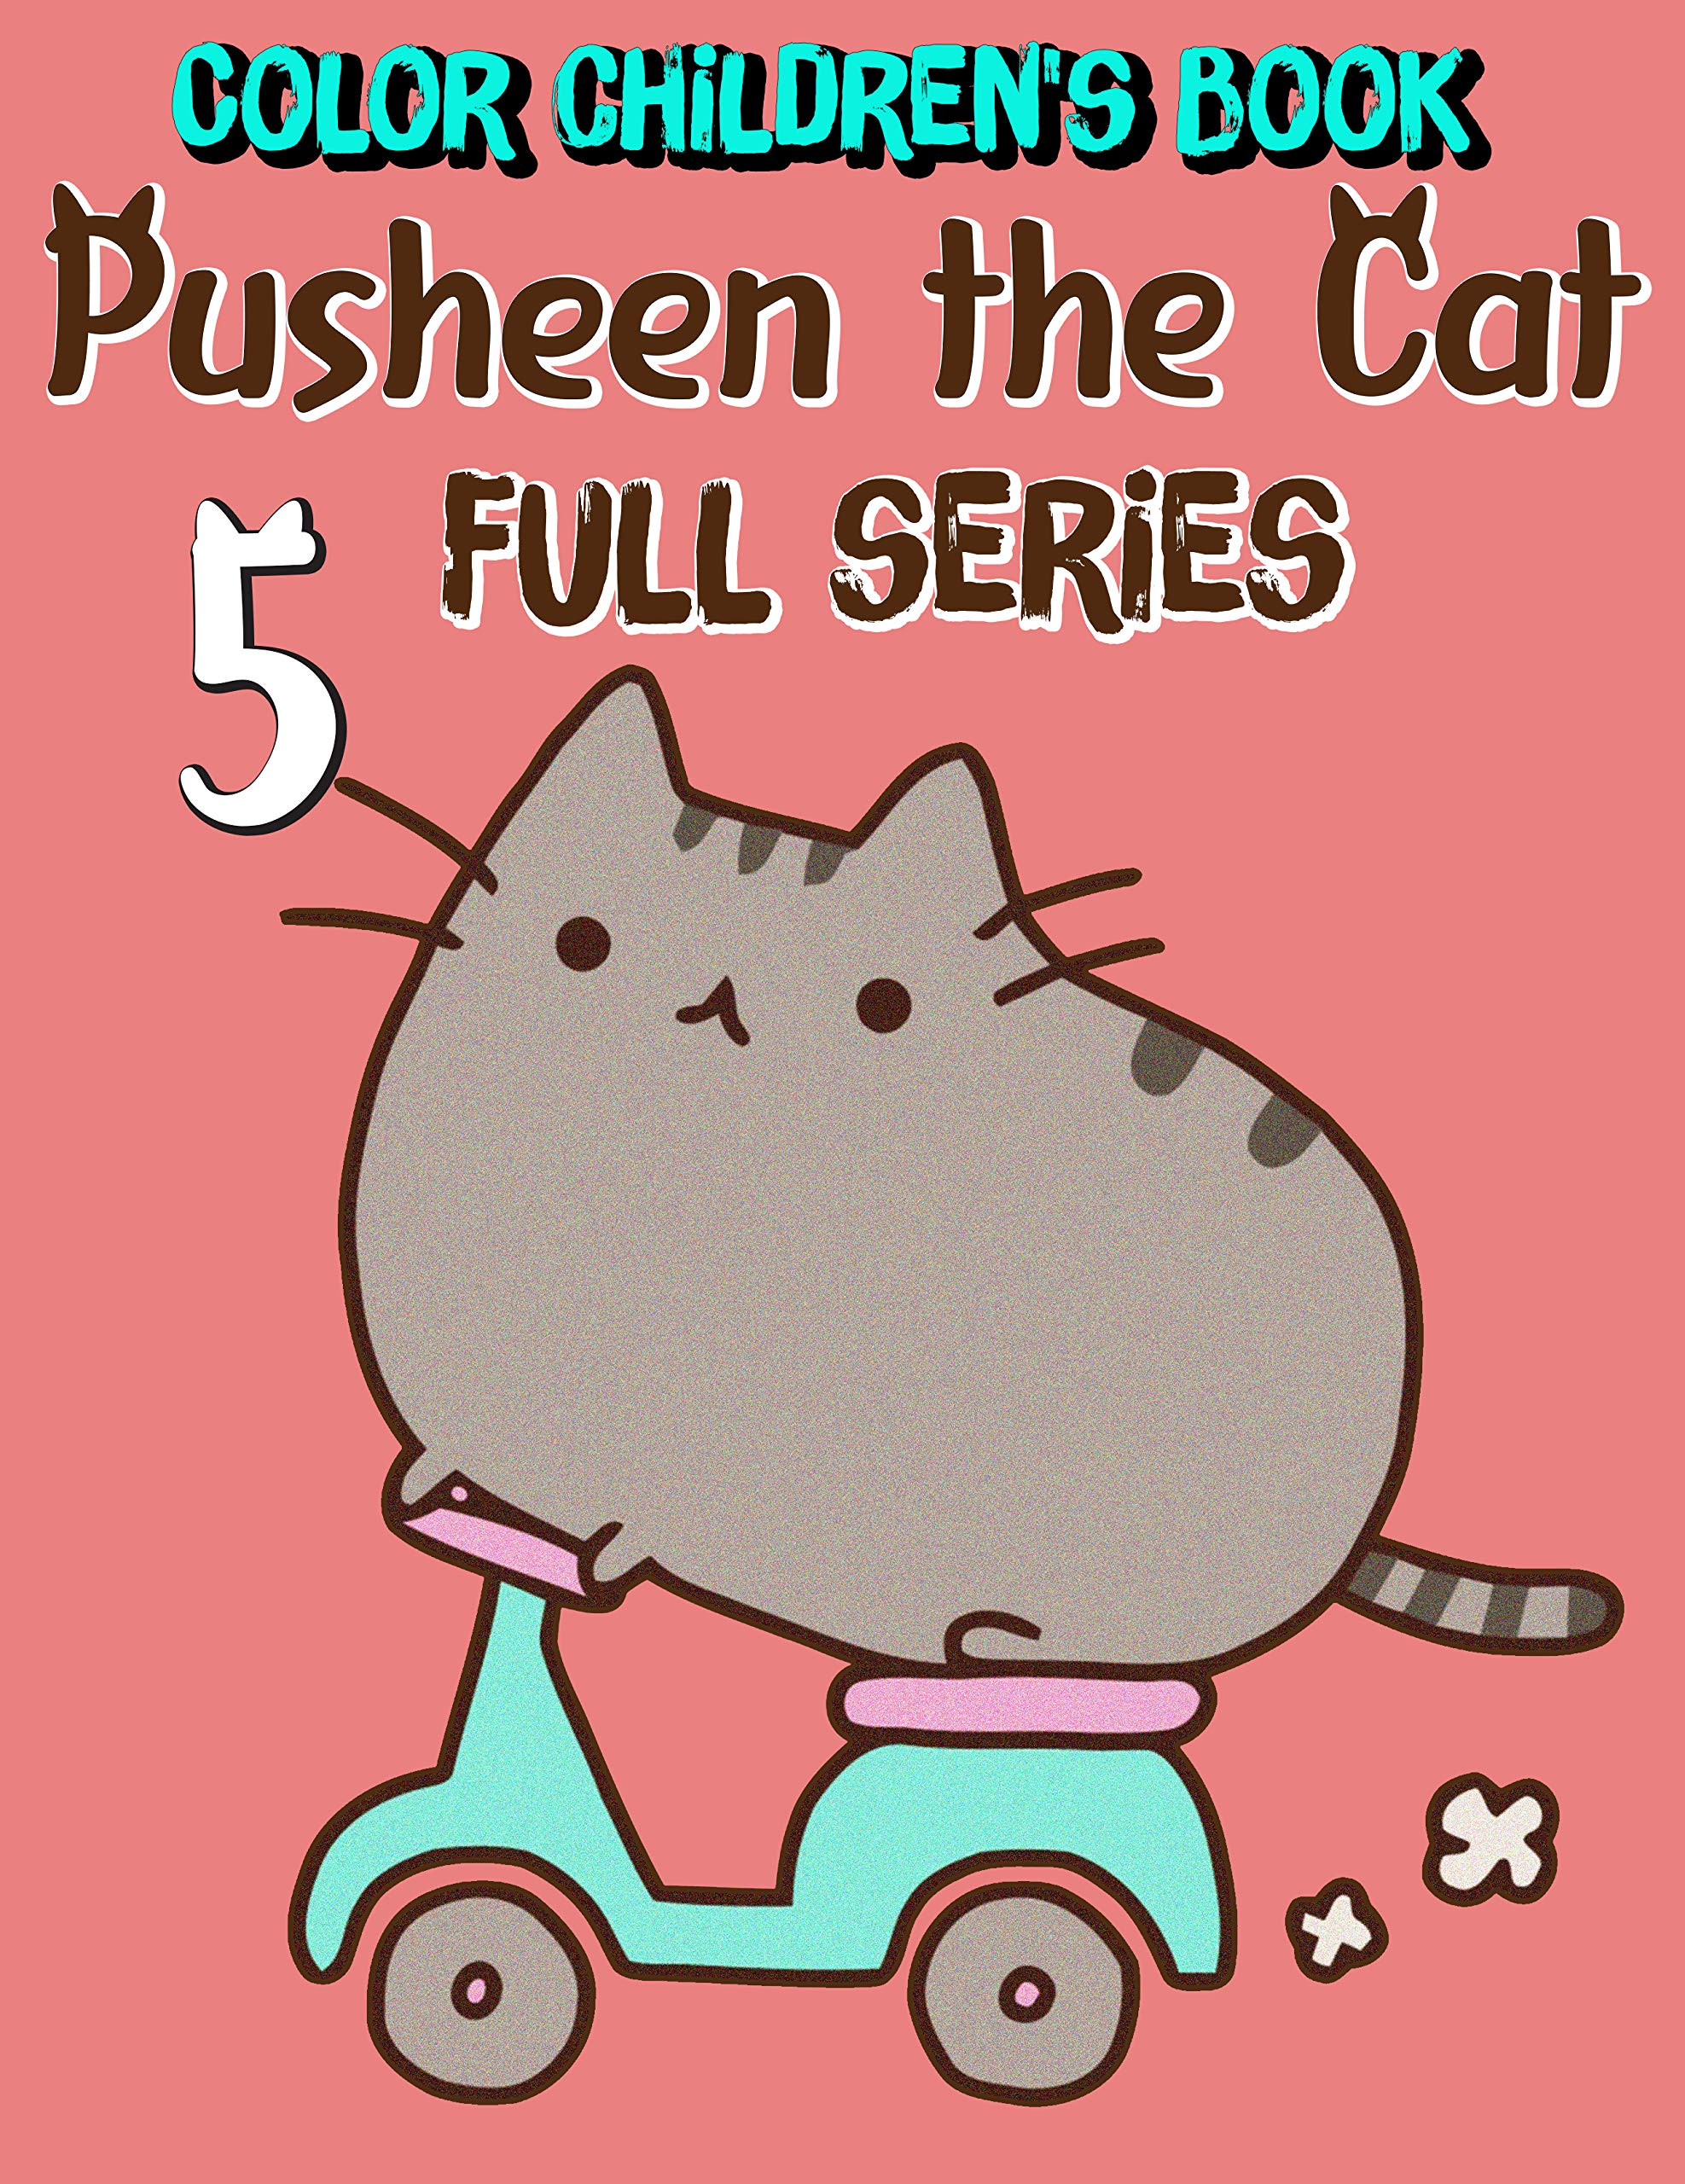 Color children's book Pusheen the Cat Full series: Funny Pusheen the Cat Limited Edition Volume 5